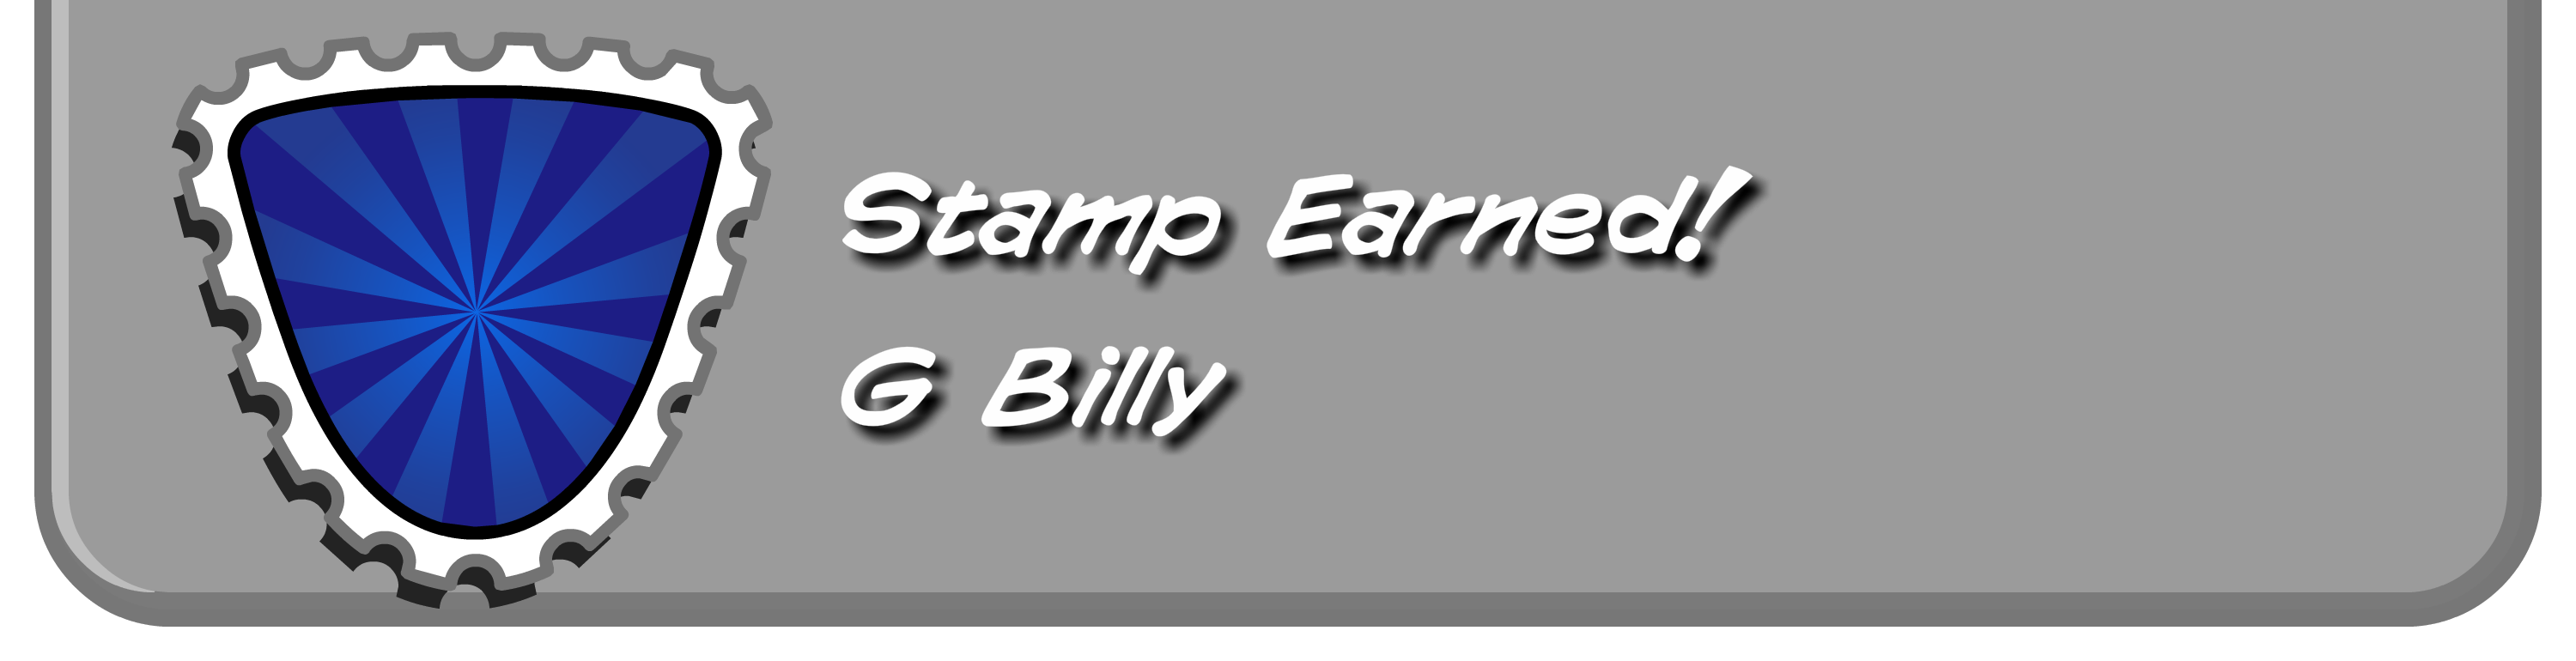 G Billy Stamp